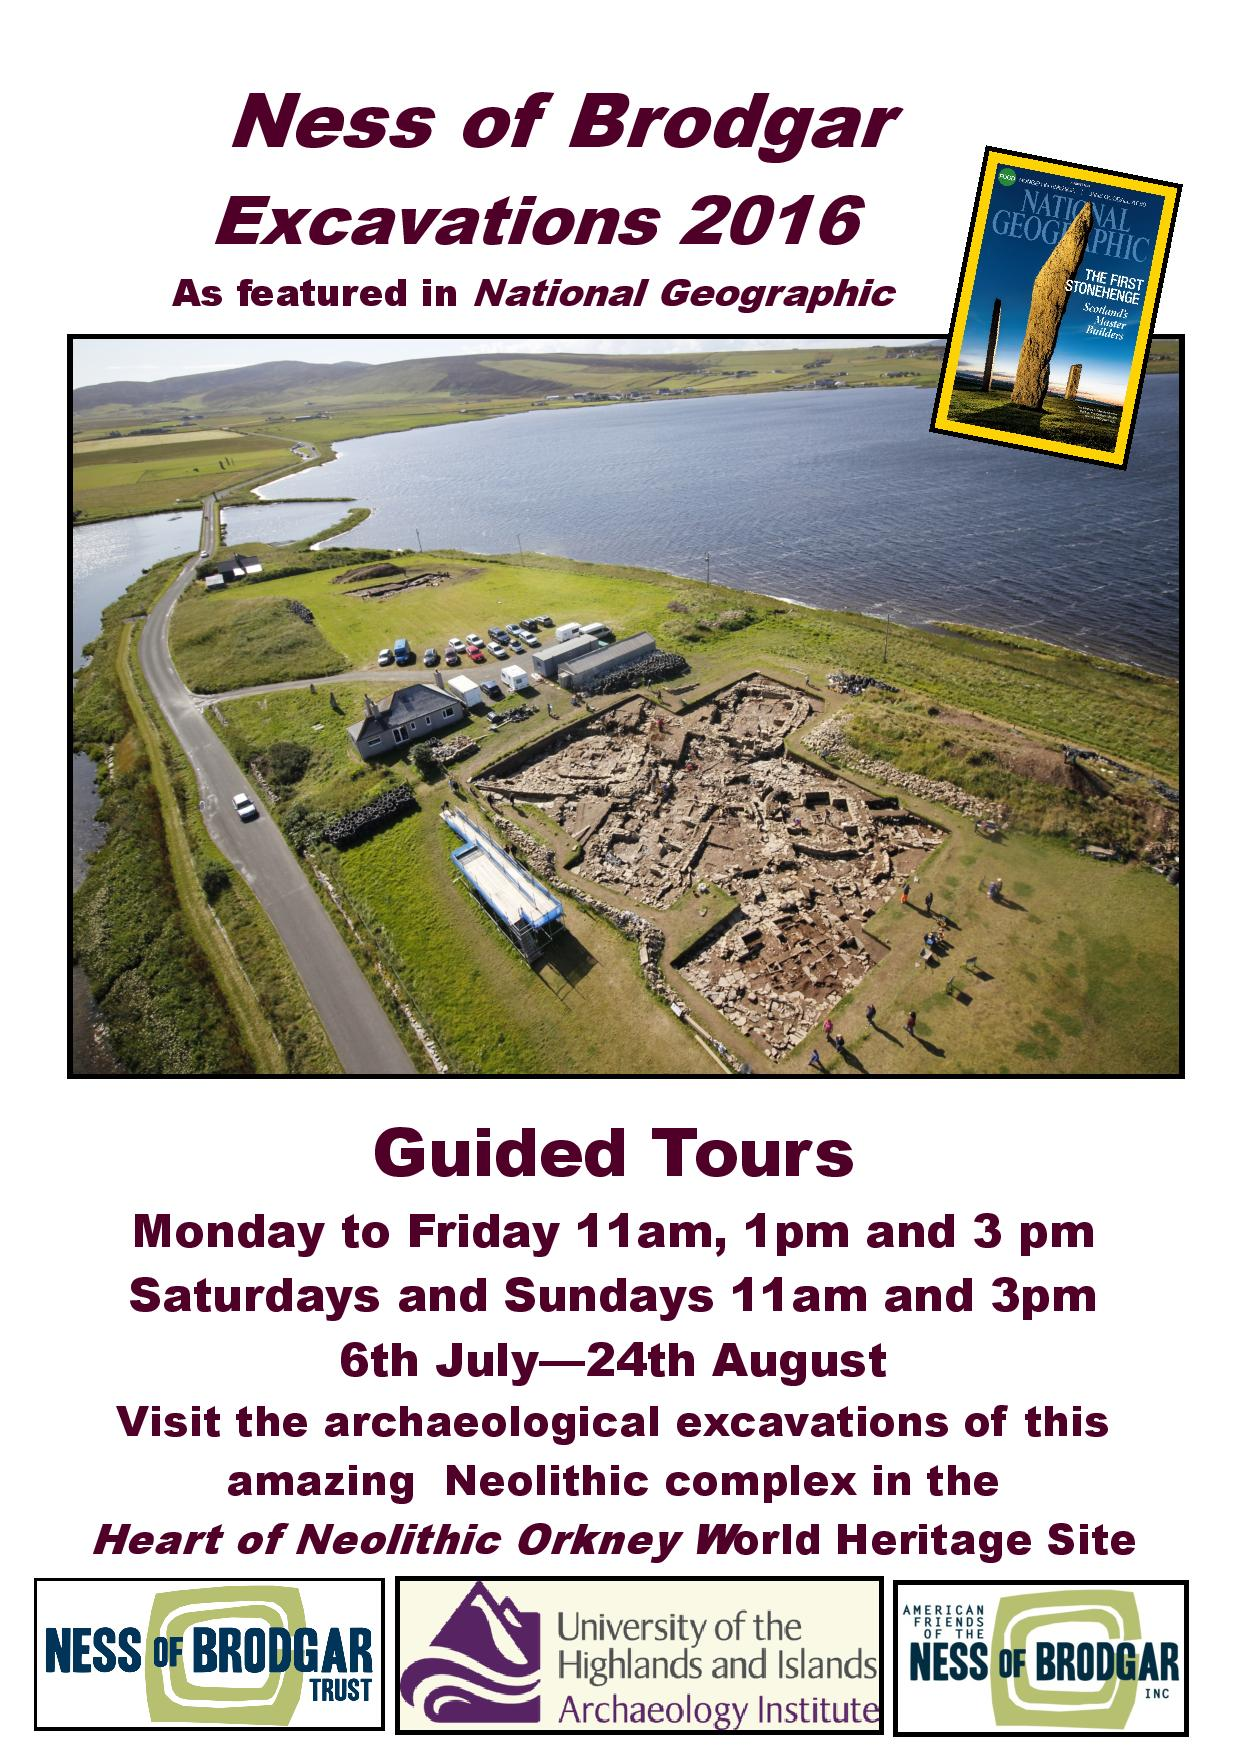 Tours Of Ness Of Brodgar